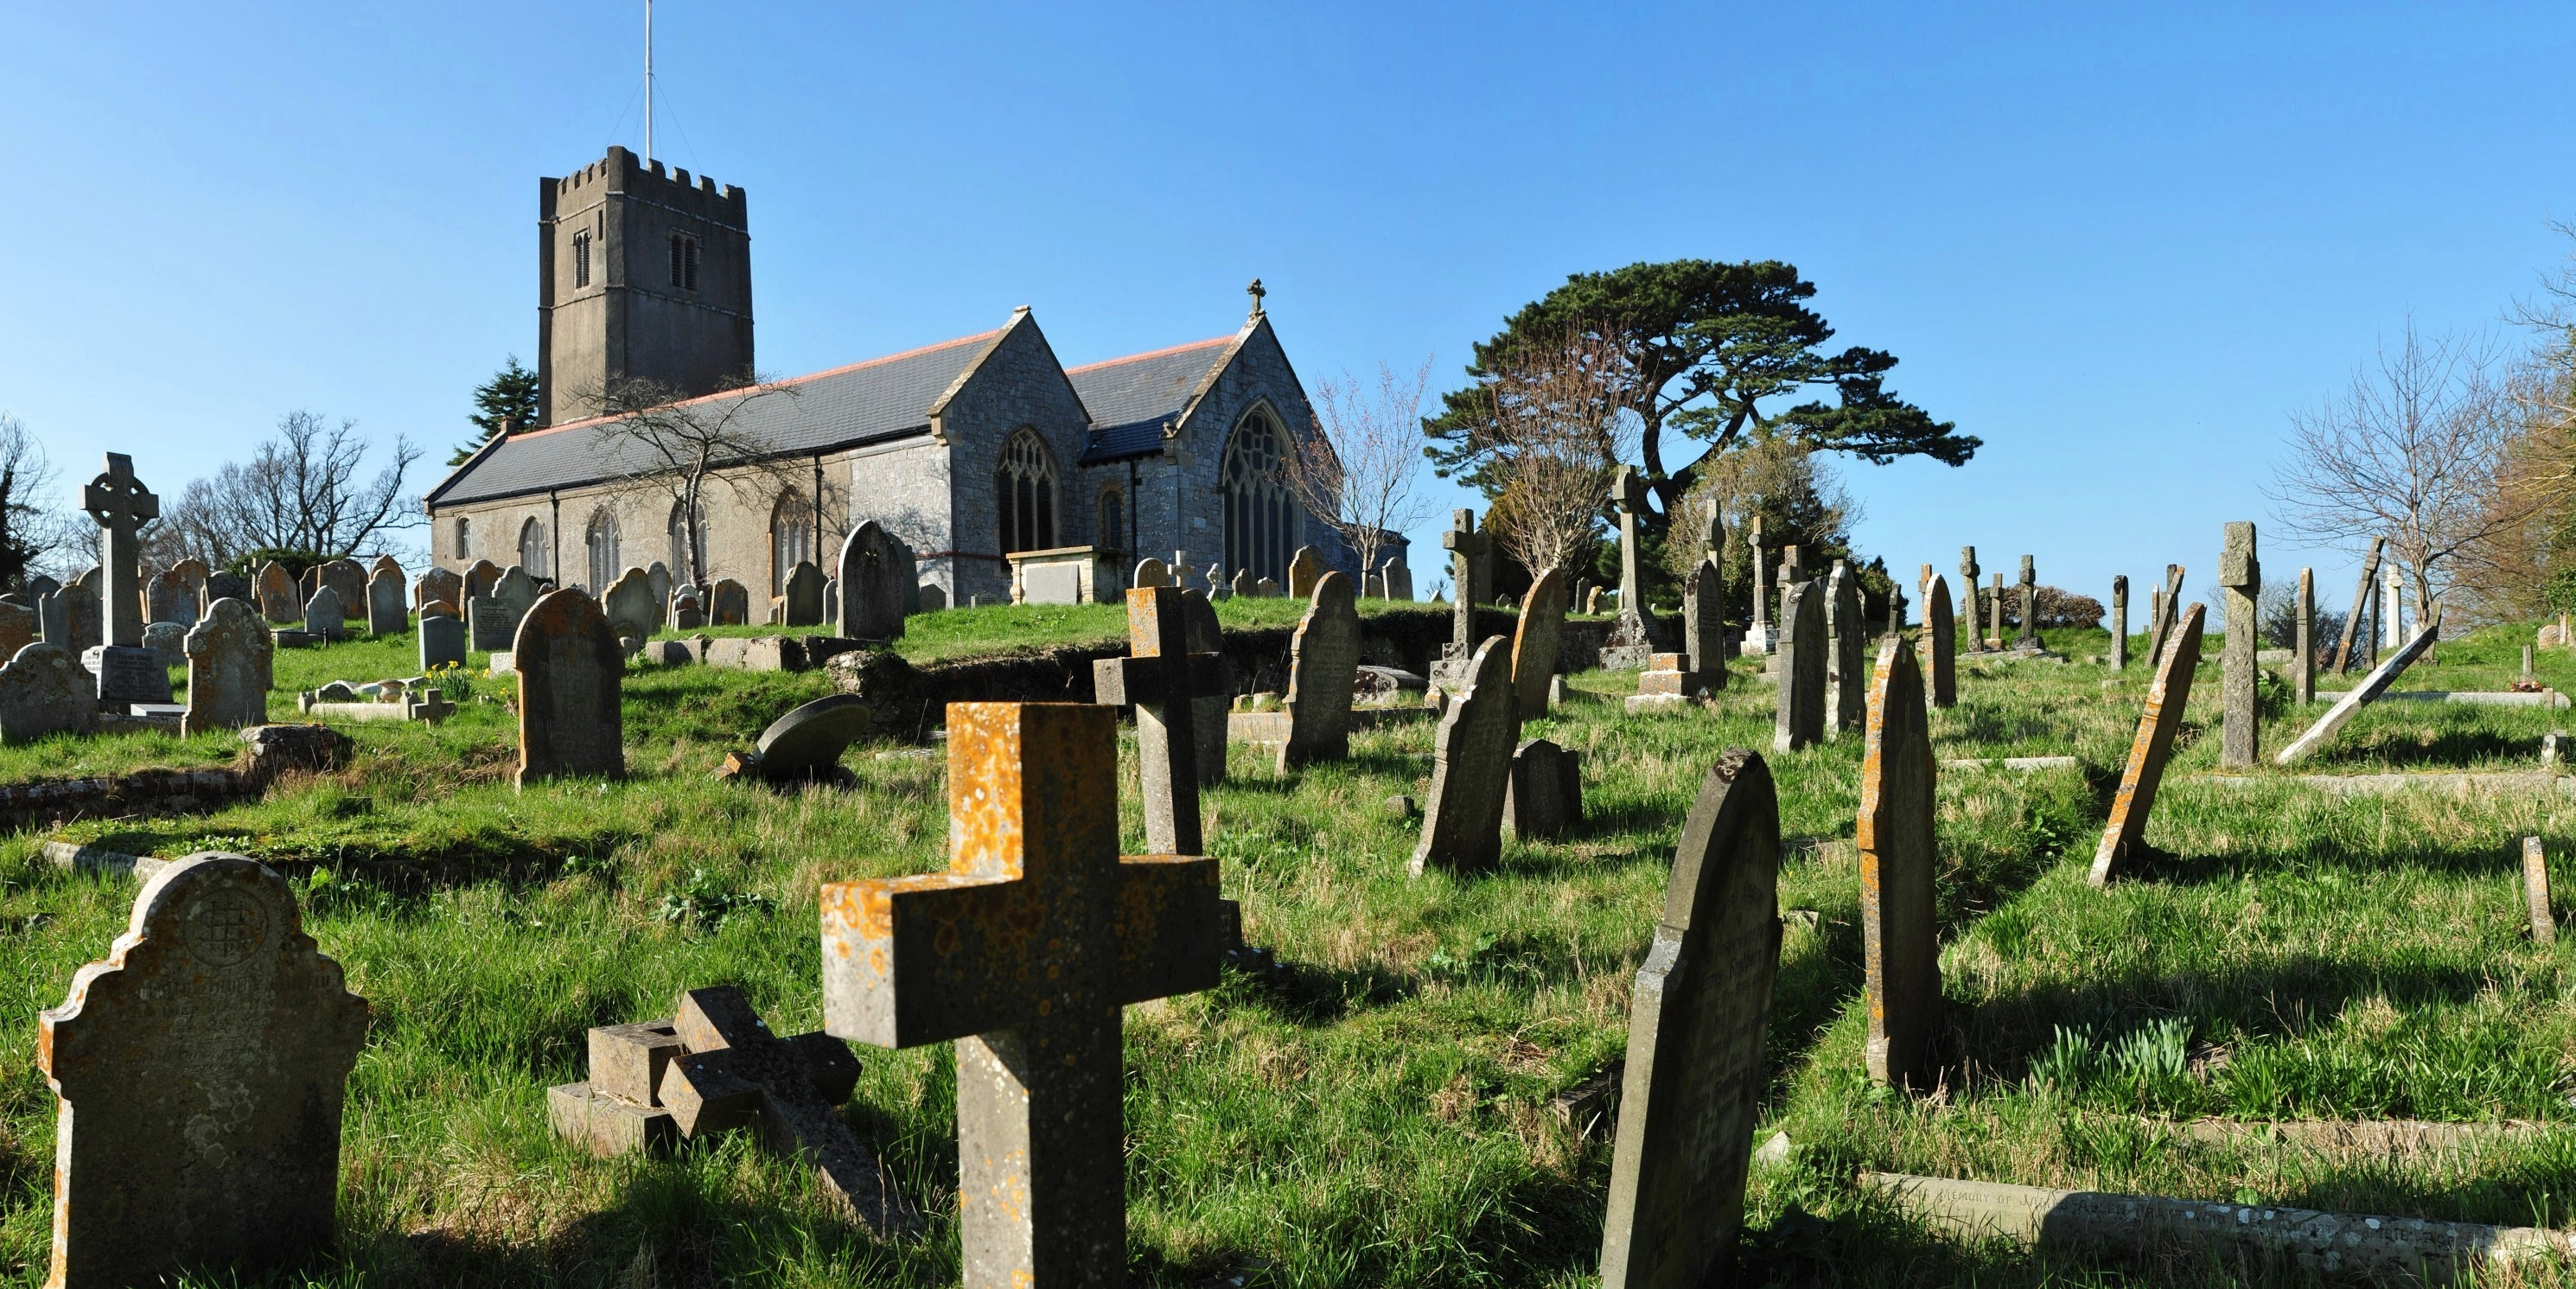 All Saints Church and its graveyard in Highweek, Devon, England.